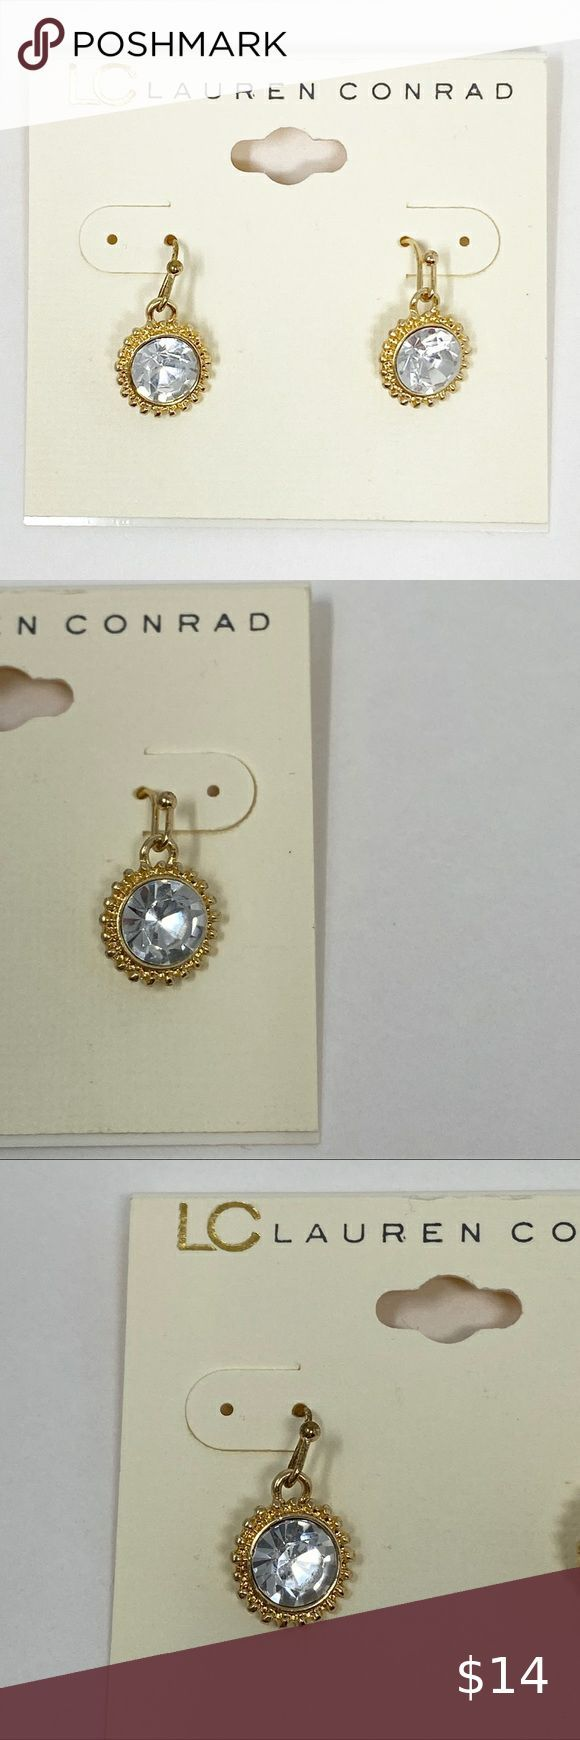 Lc Lauren Conrad Jewelry Casual Outfits